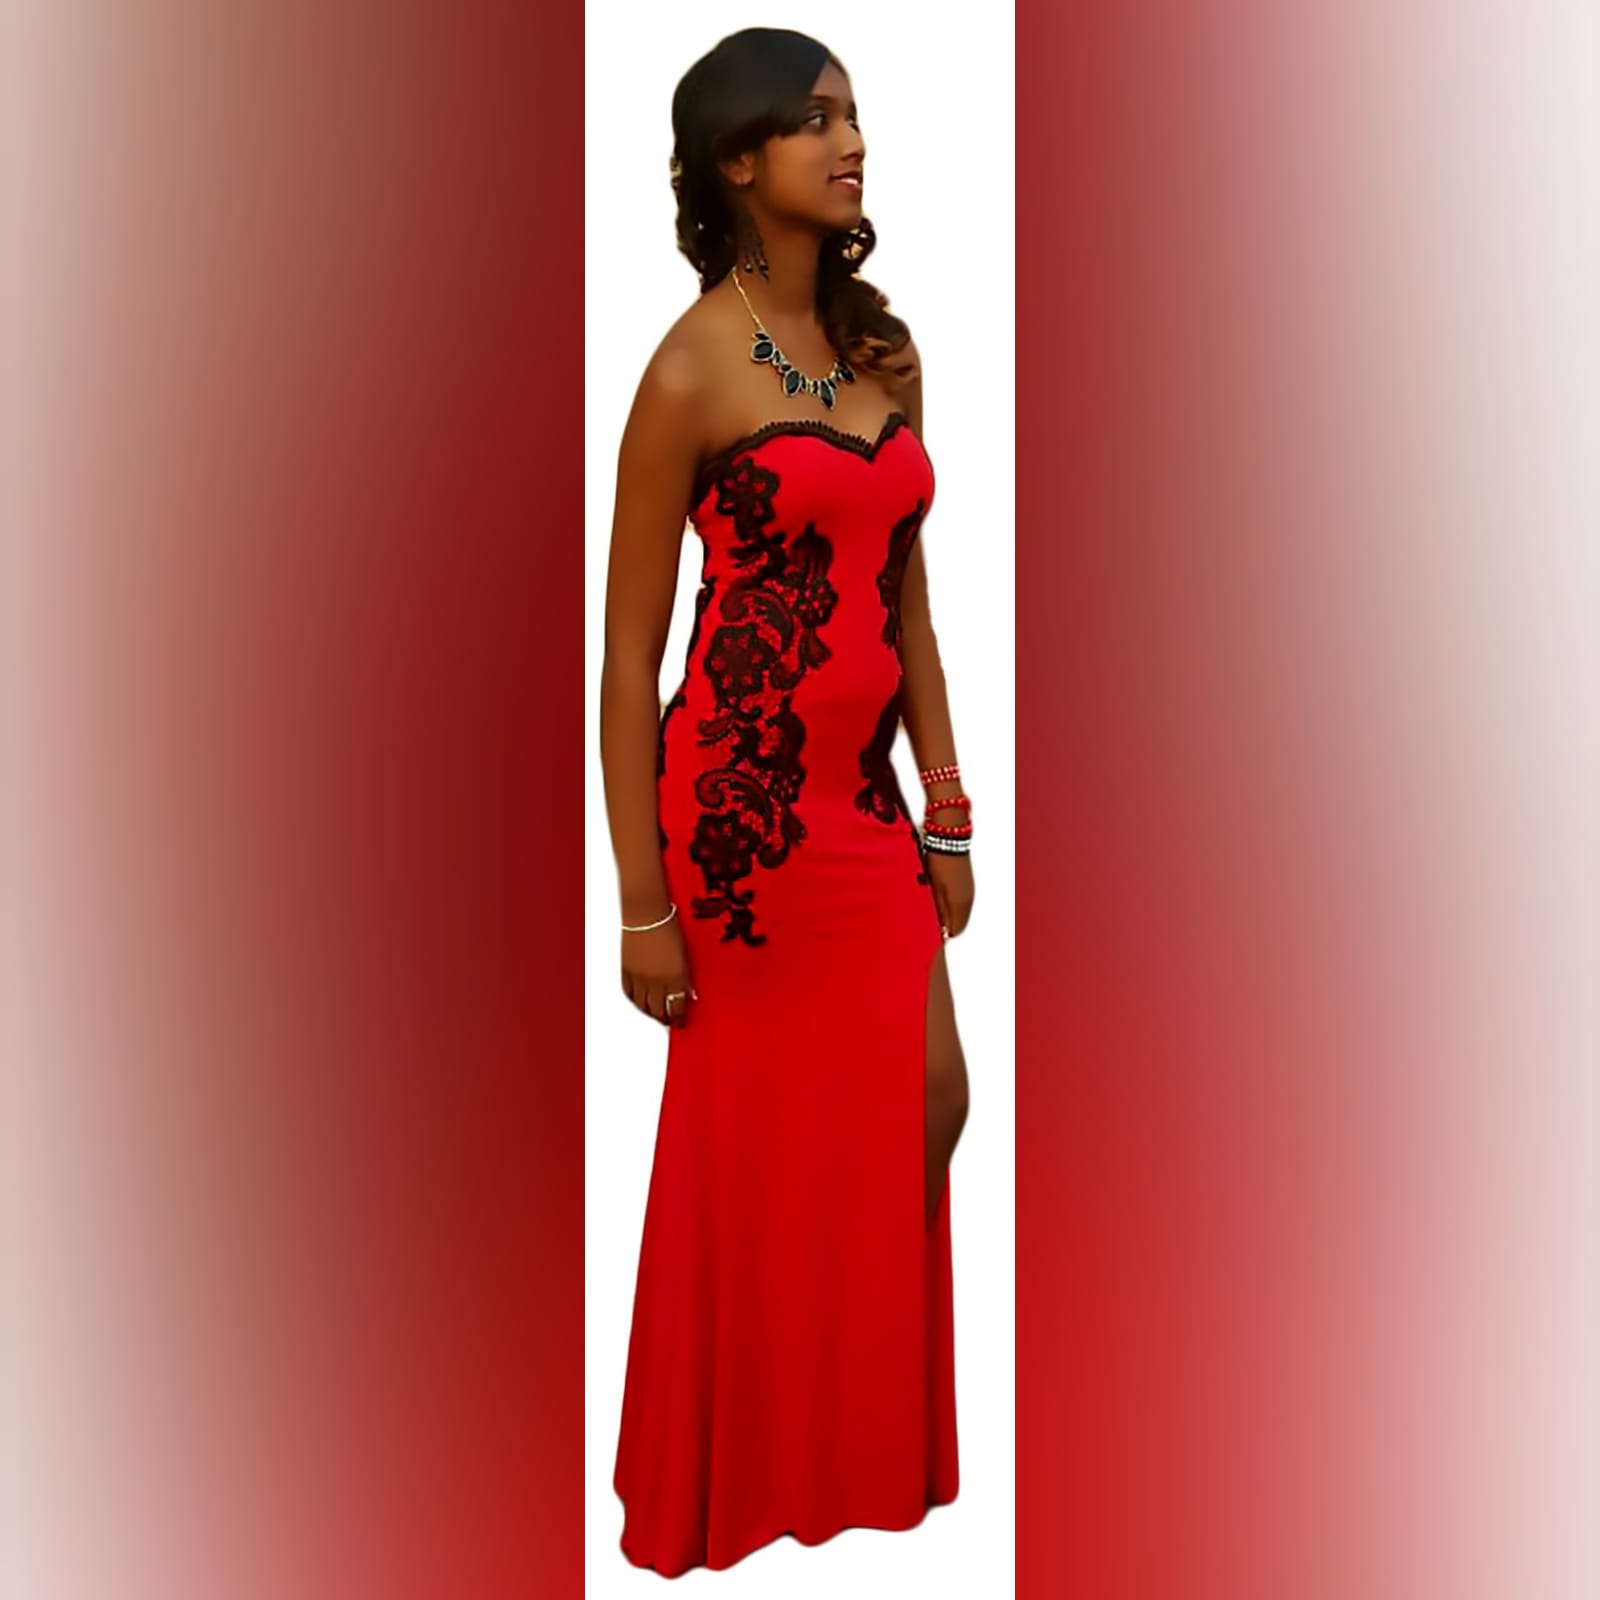 Red evening dress detailed with black lace 1 red evening dress detailed with black lace on the sides, front & back. With a sweetheart neckline finished with black scallop lace.